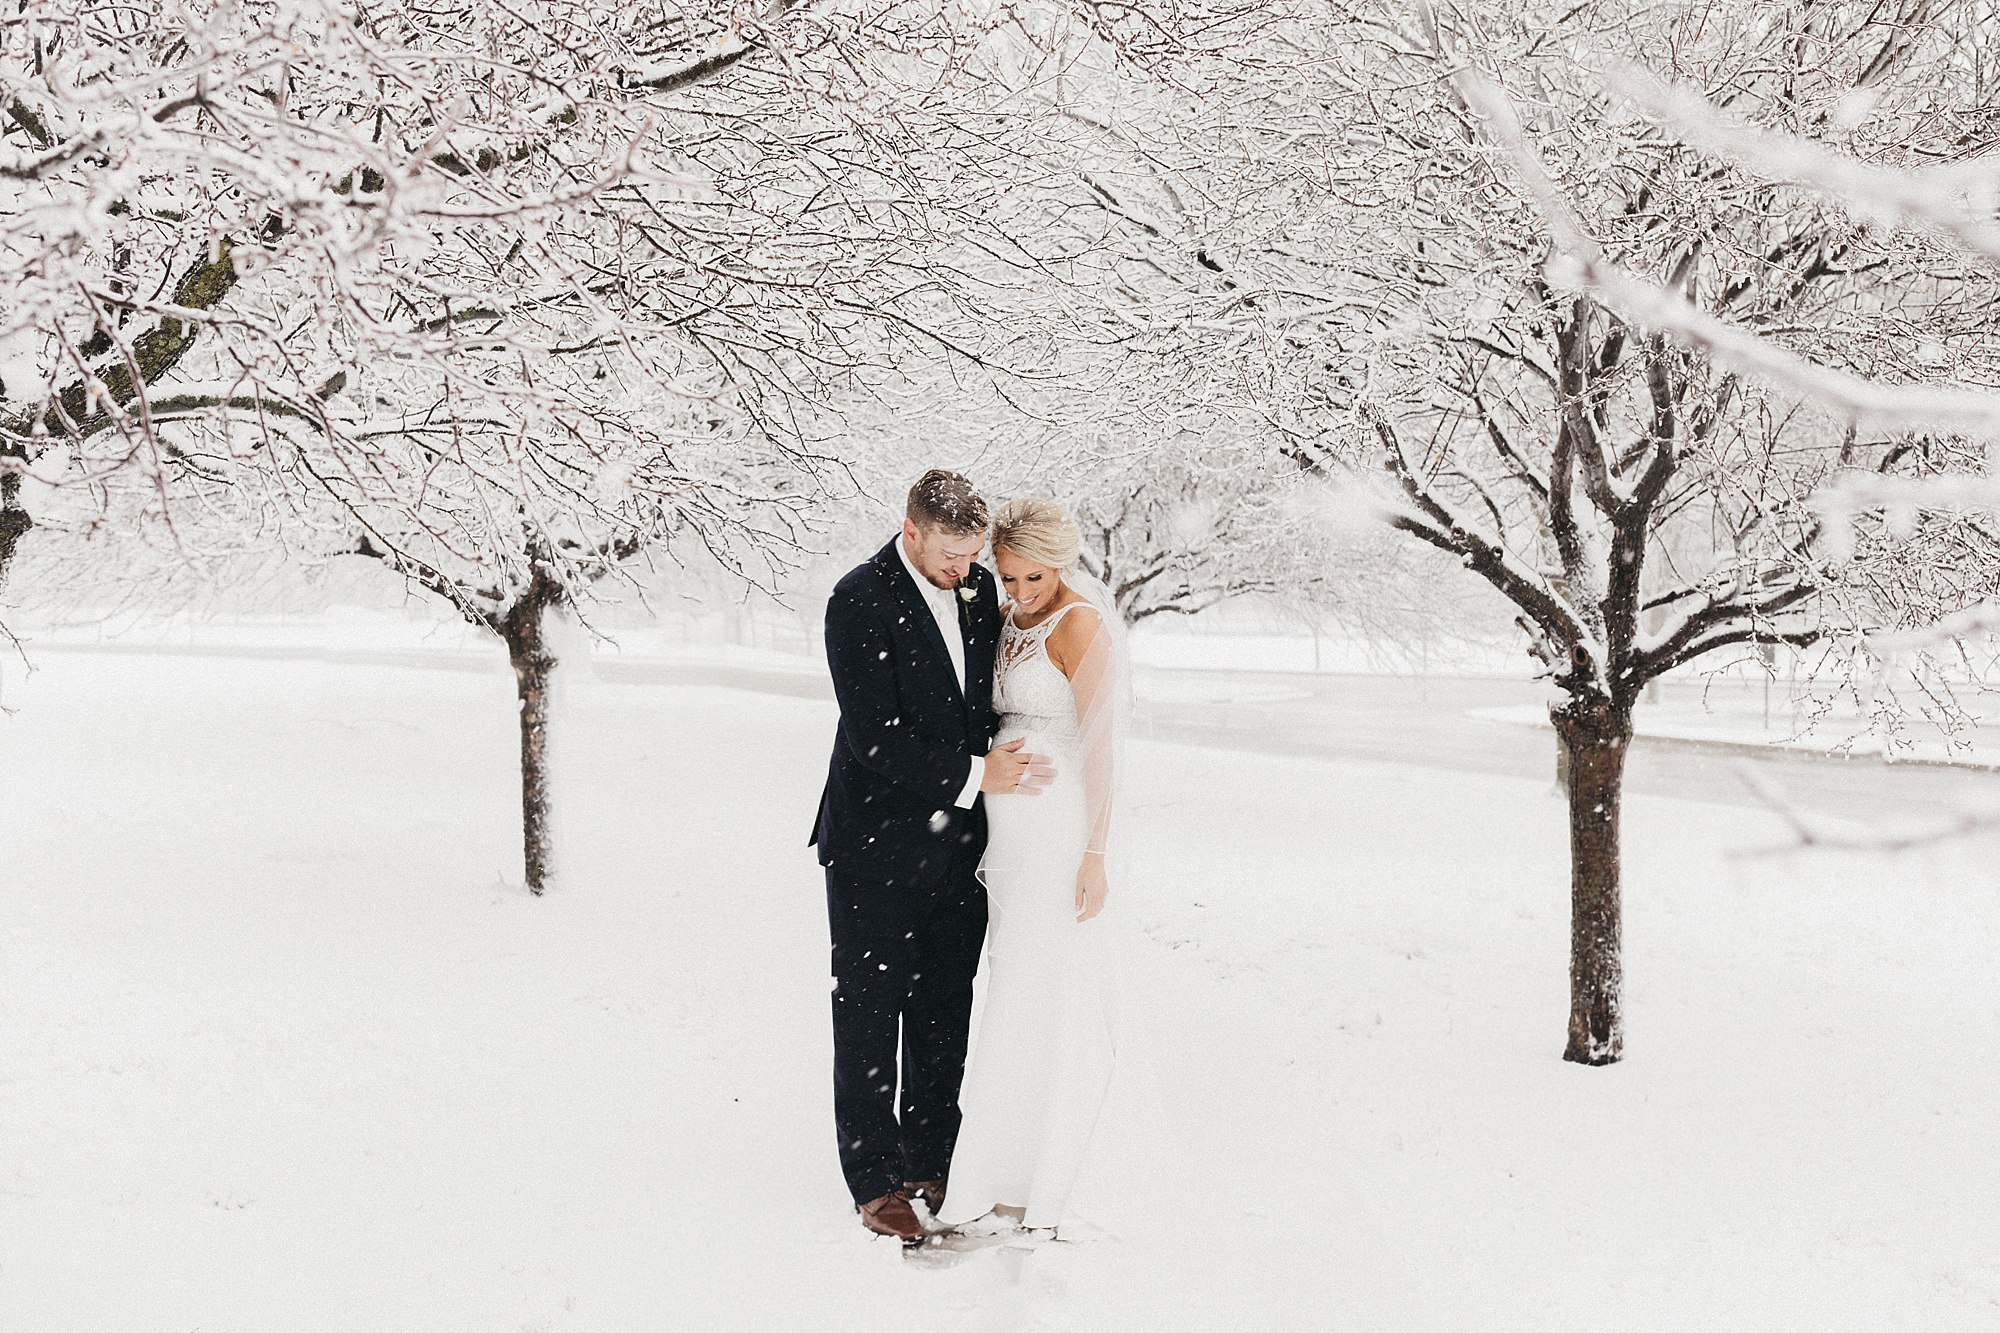 snowy winter wedding with pregnant bride in vintage gown